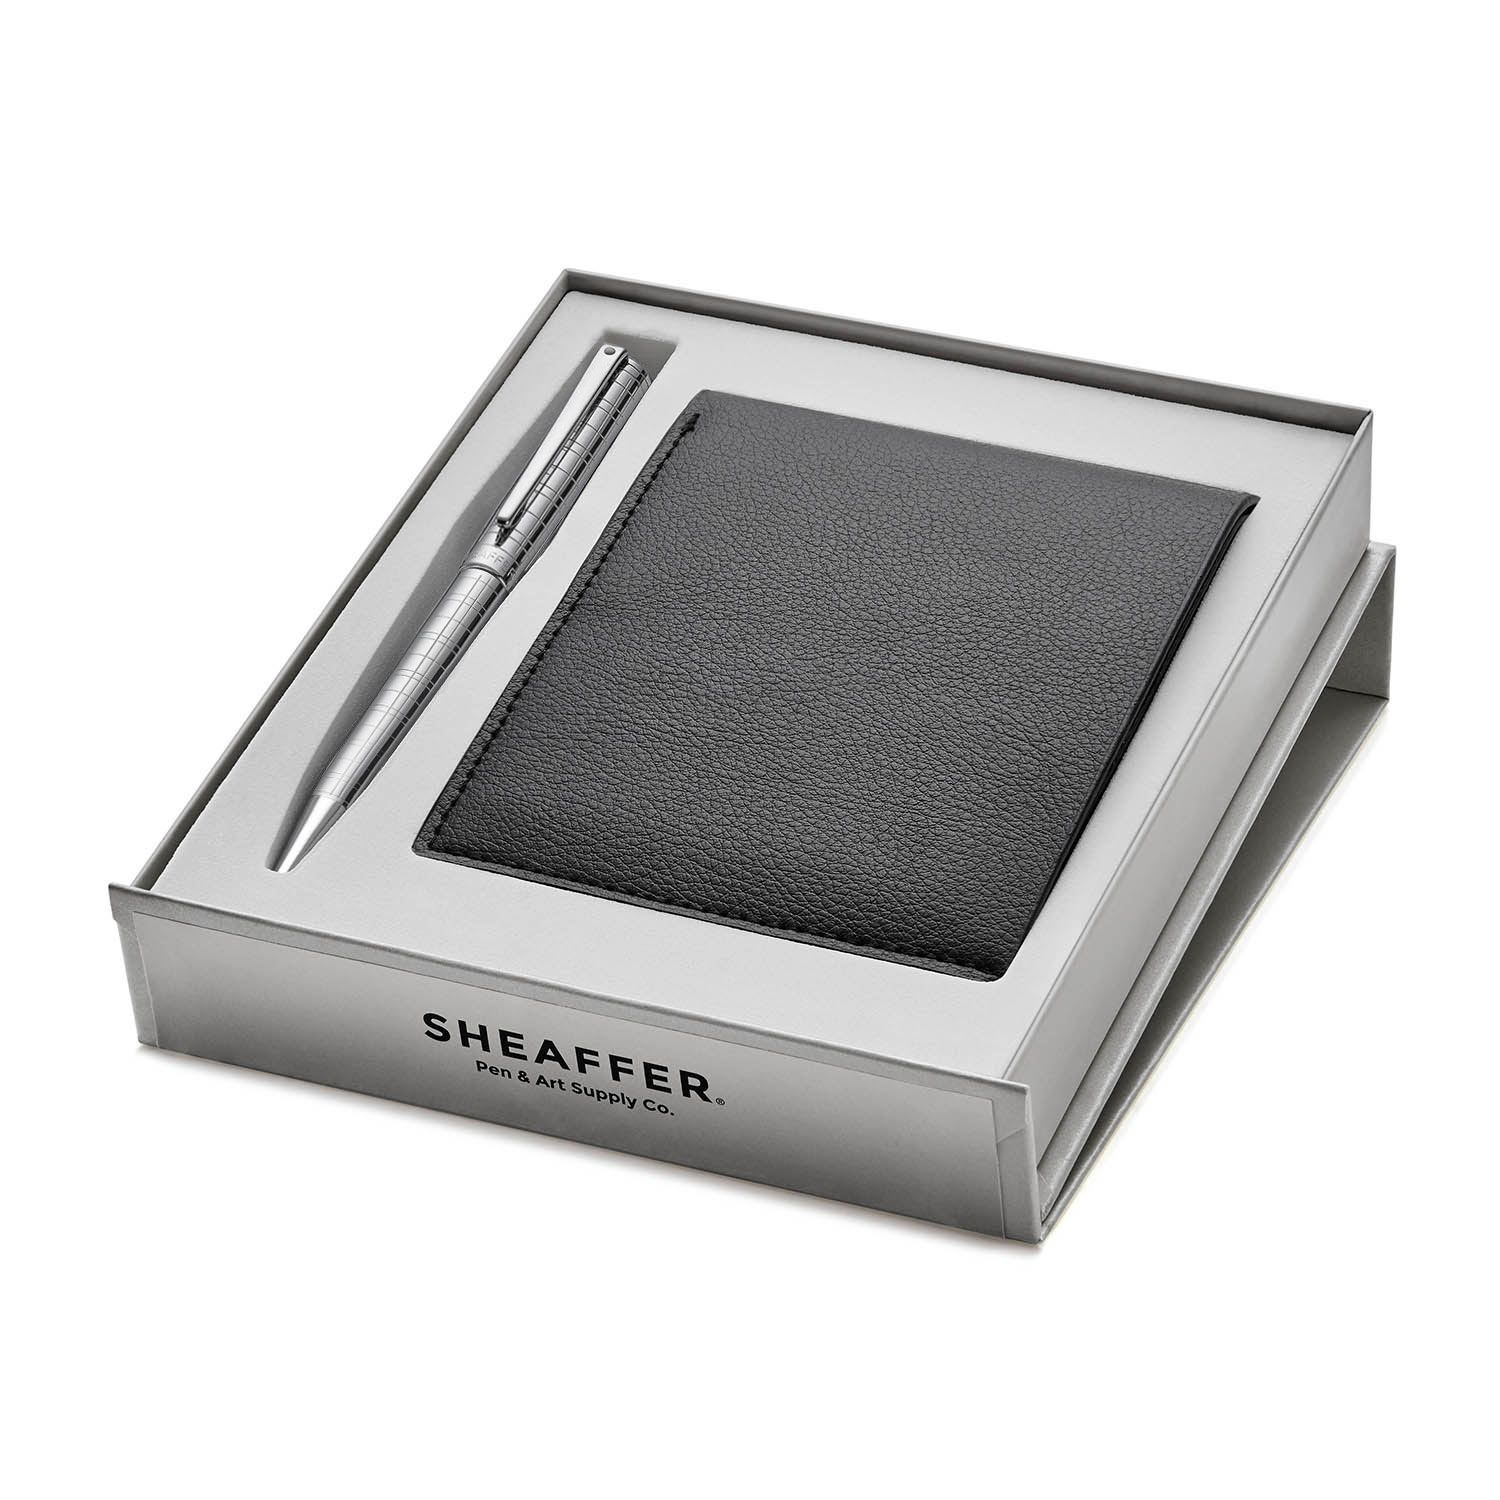 Sheaffer 9237 Ball Point Pen With Slim Wallet Rs. 1950